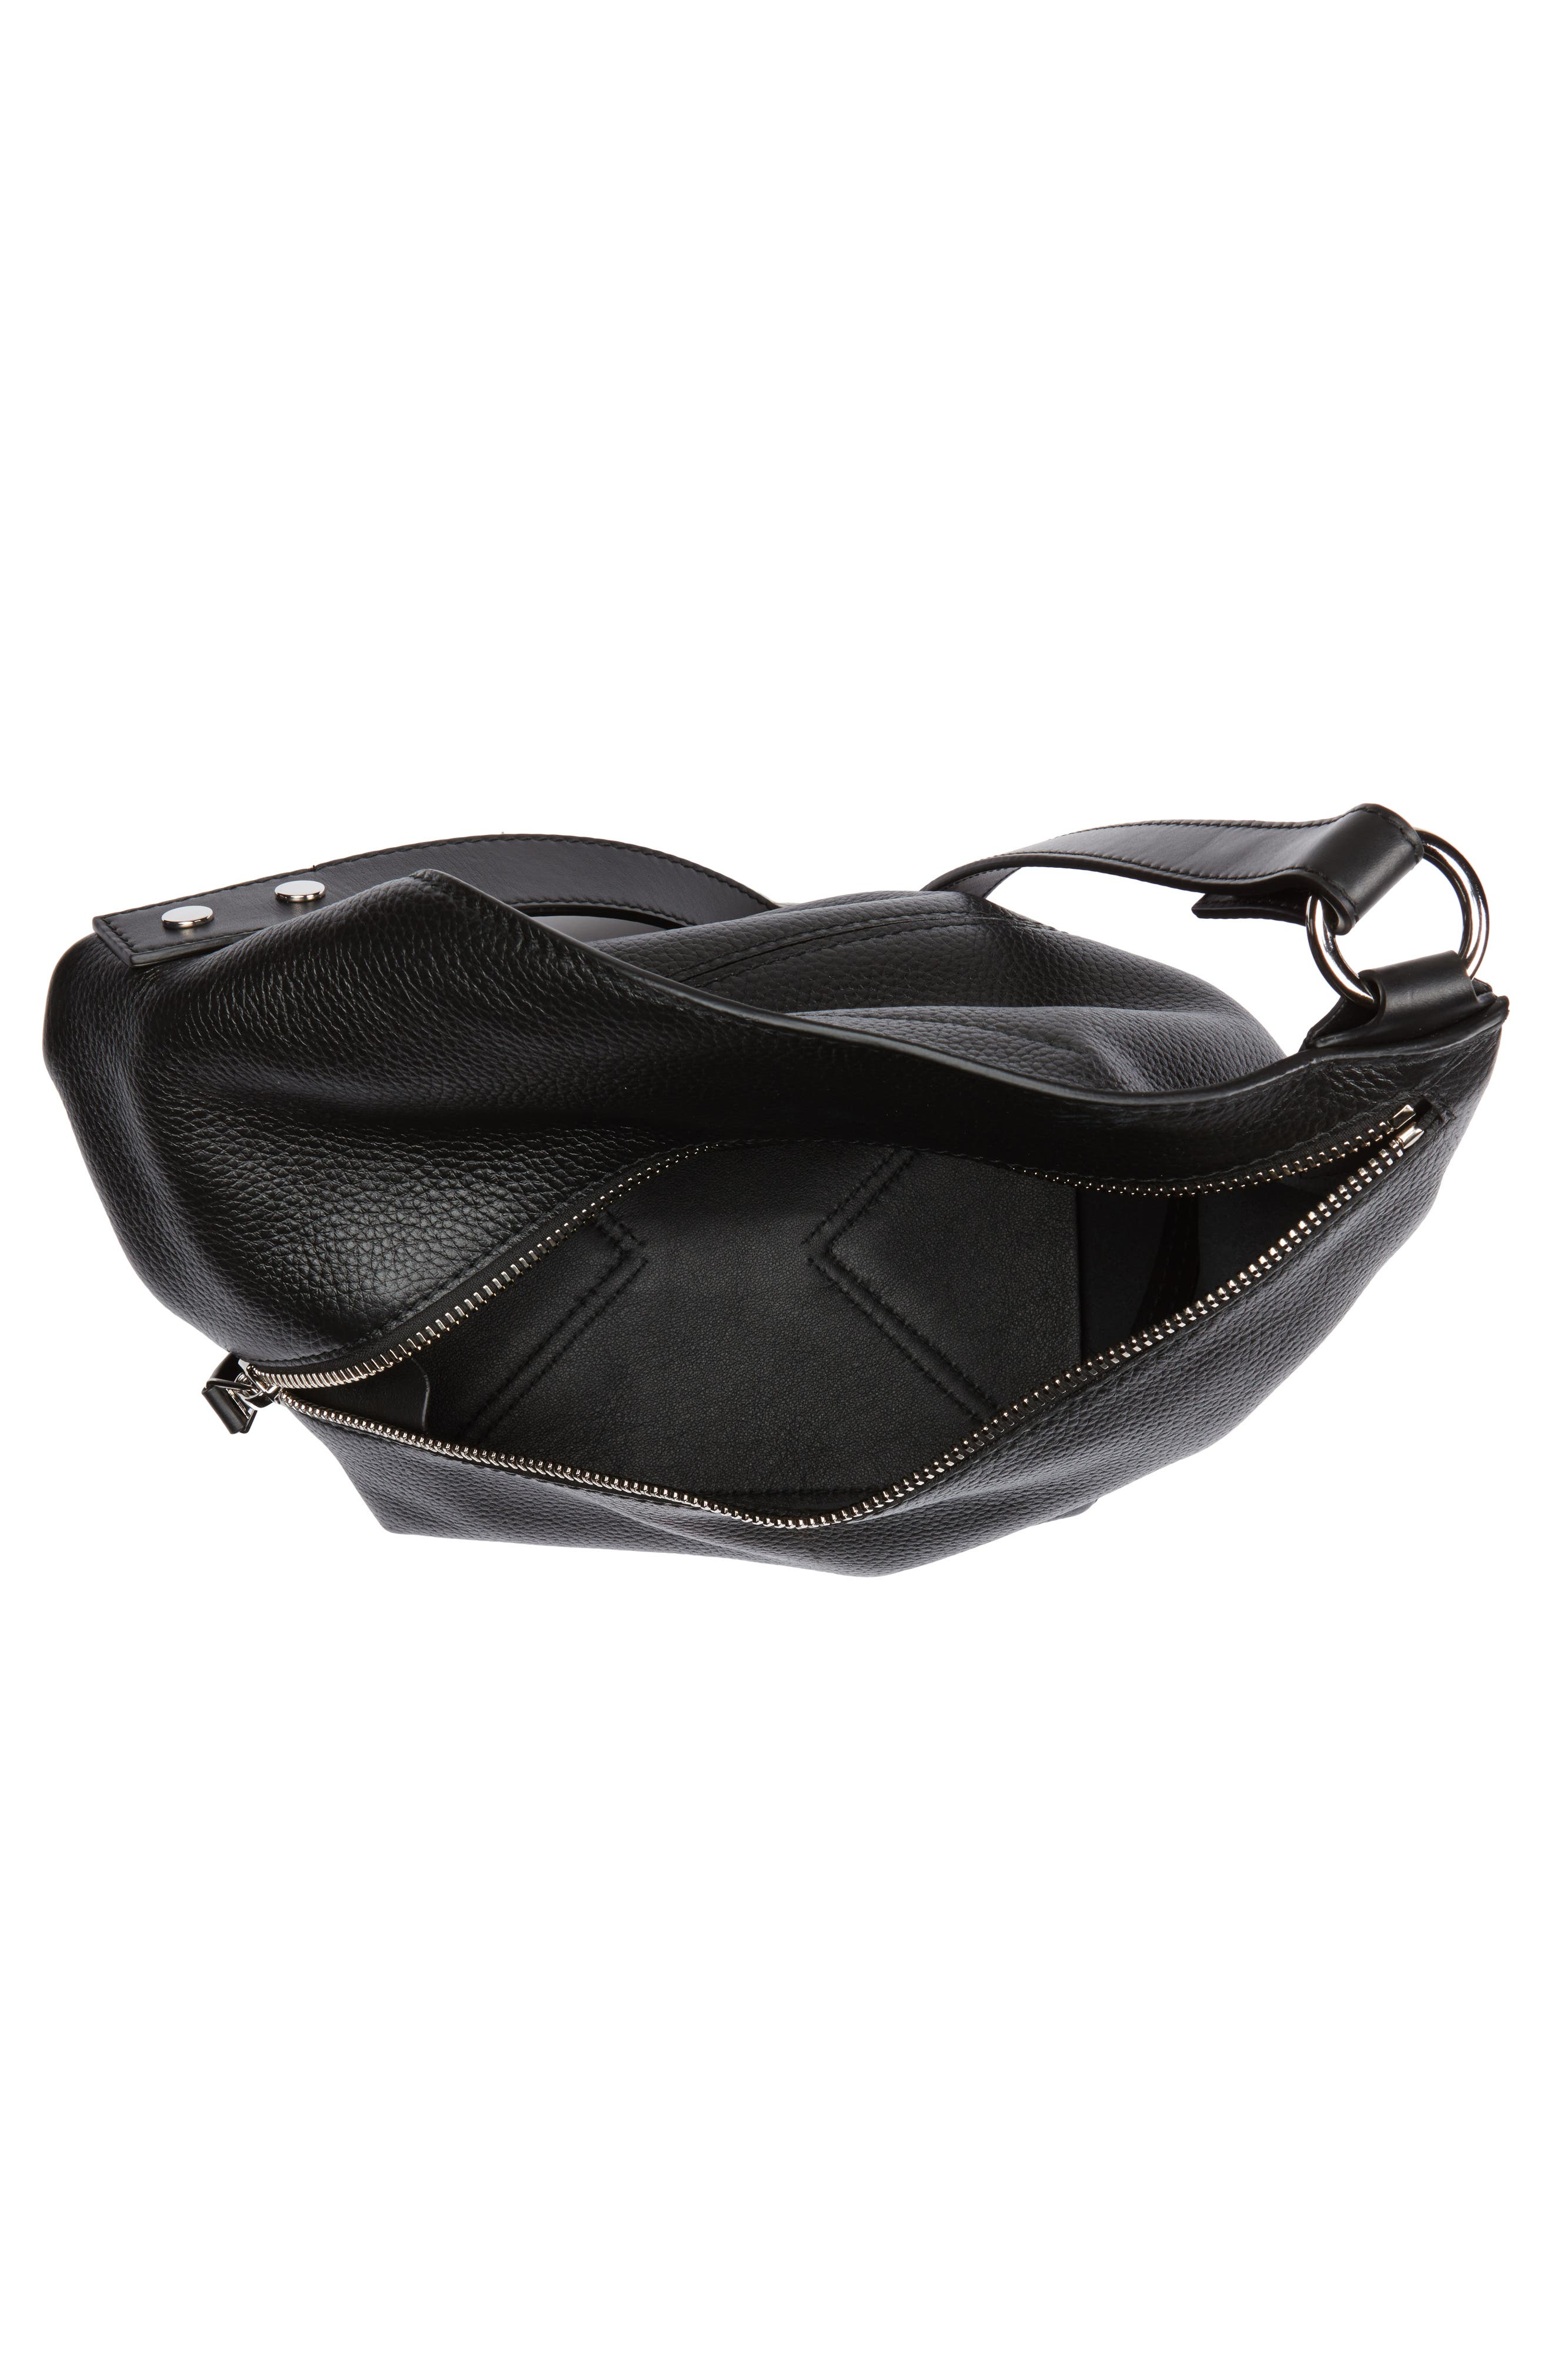 Small Leather Hobo Bag,                             Alternate thumbnail 4, color,                             001